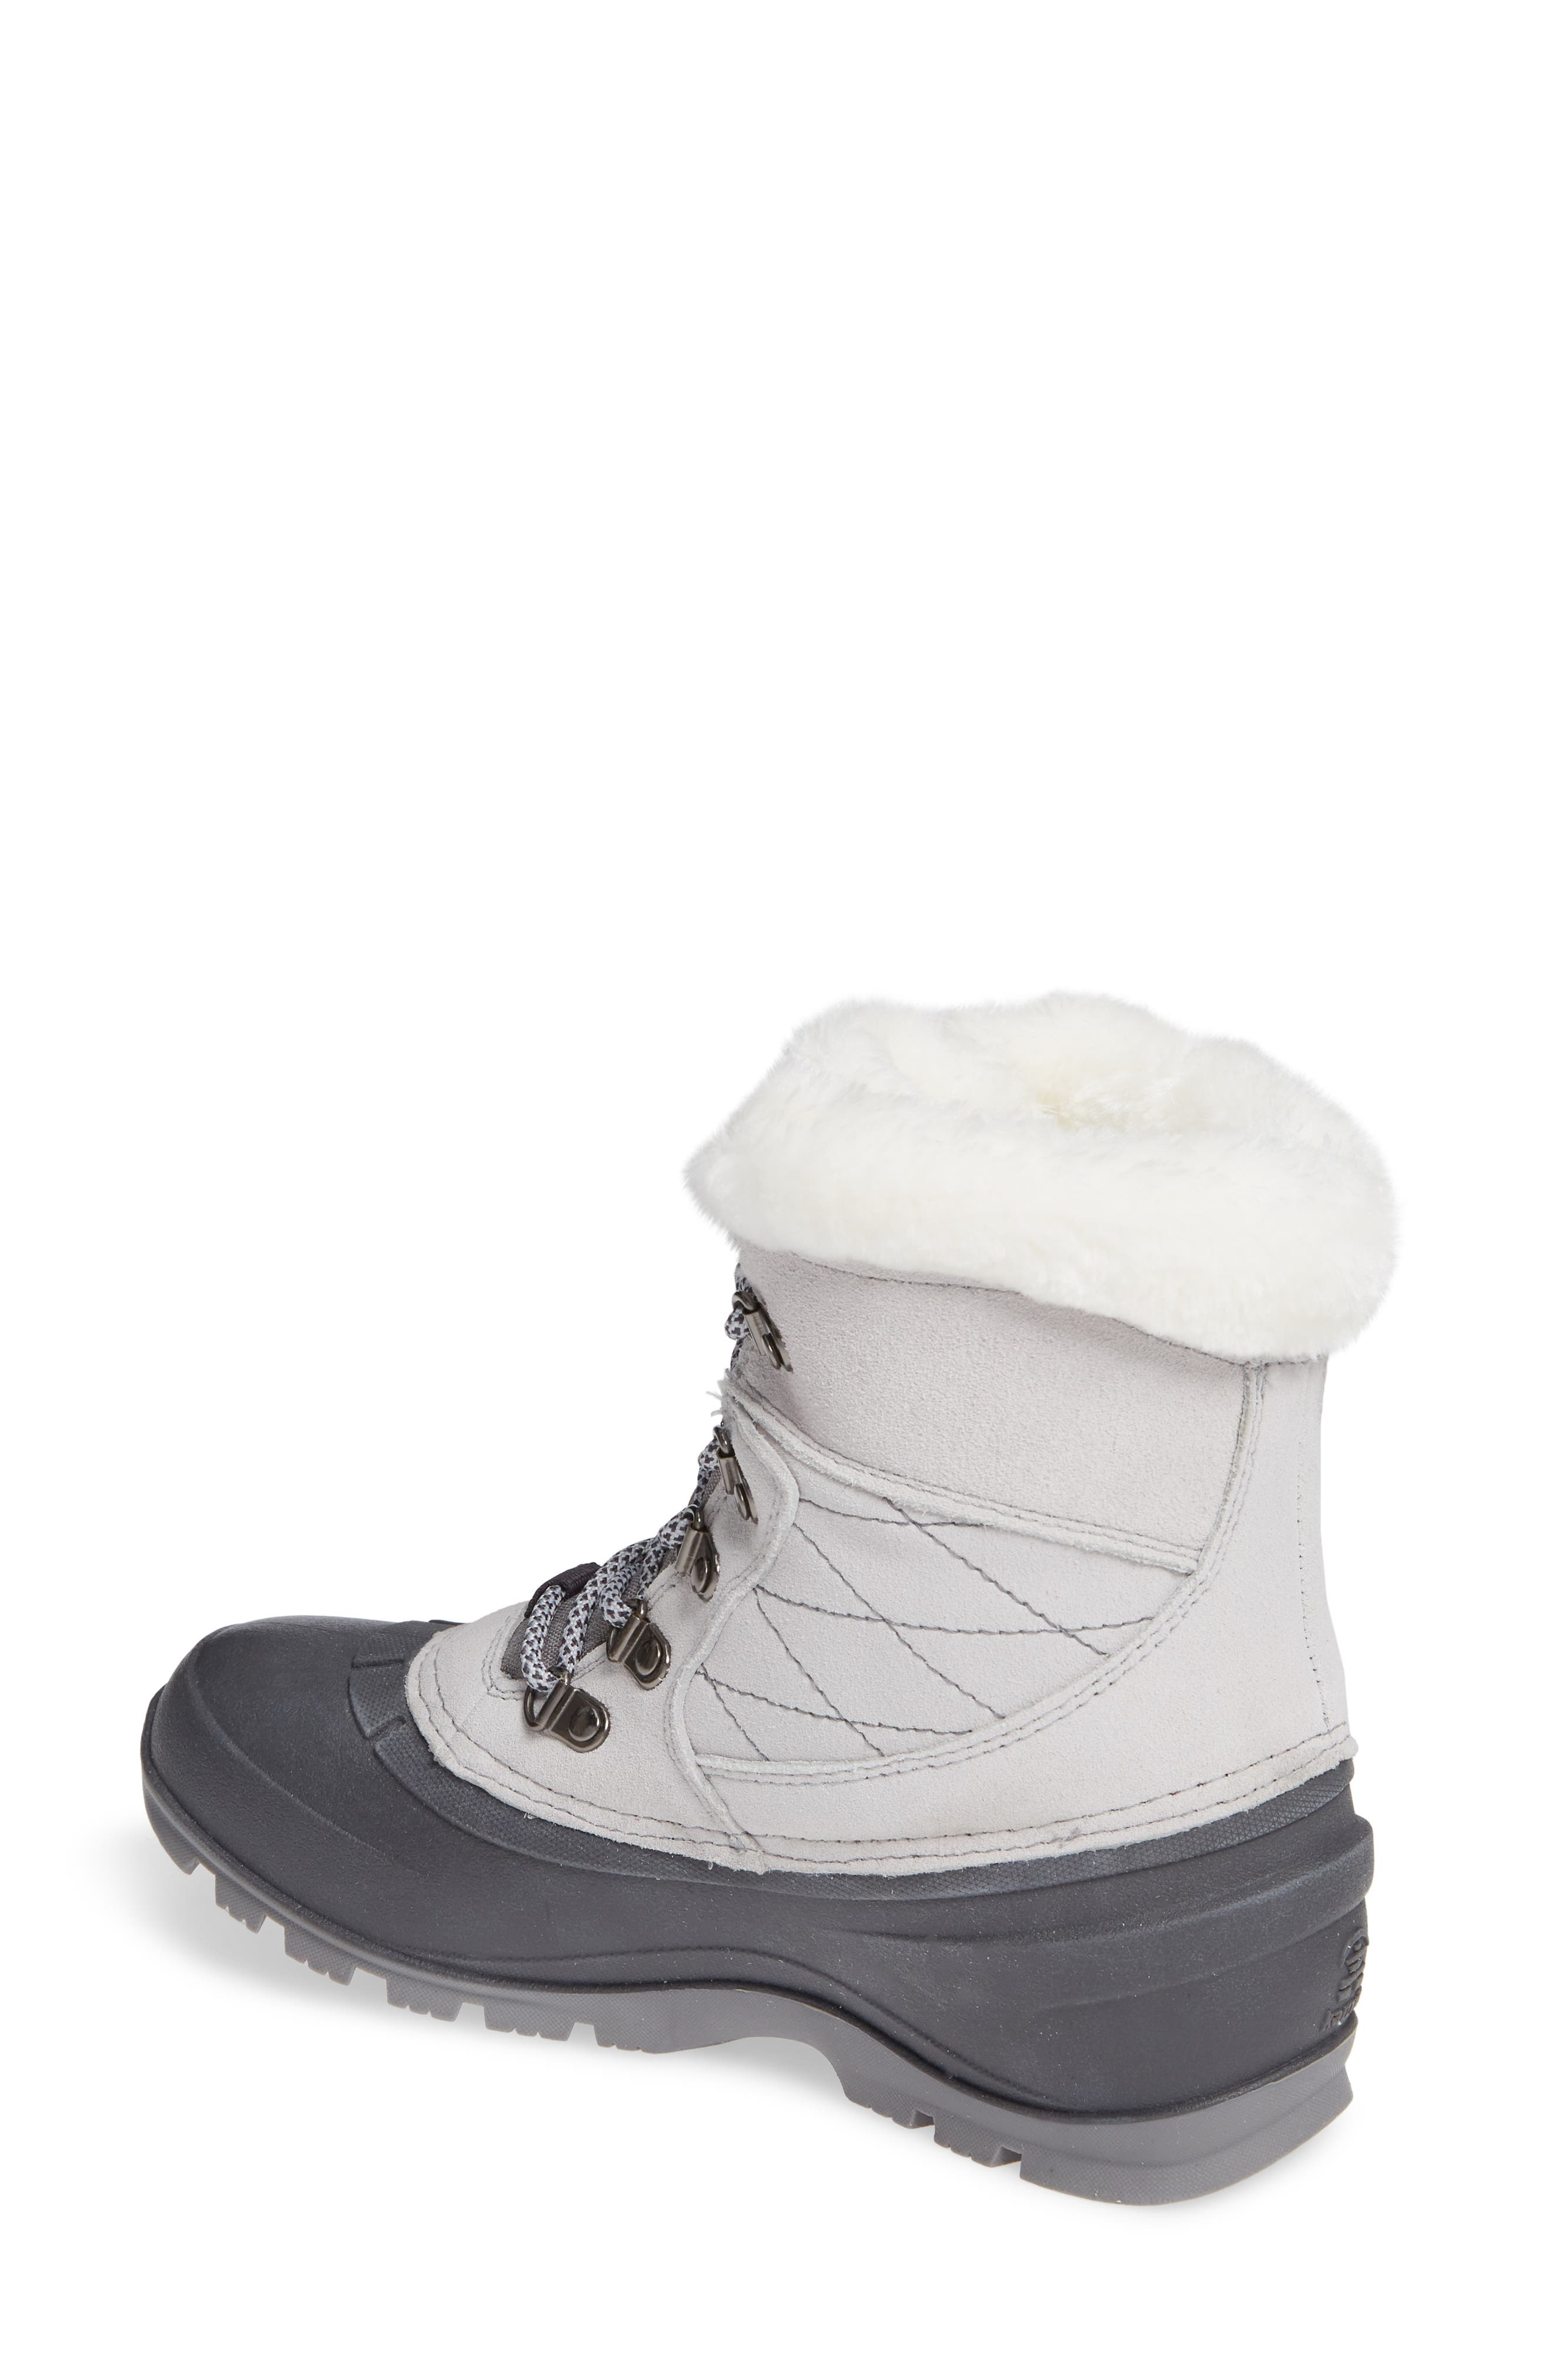 KAMIK,                             Snovalley1 Waterproof Thinsulate<sup>®</sup> Insulated Snow Boot,                             Alternate thumbnail 2, color,                             LIGHT GREY SUEDE